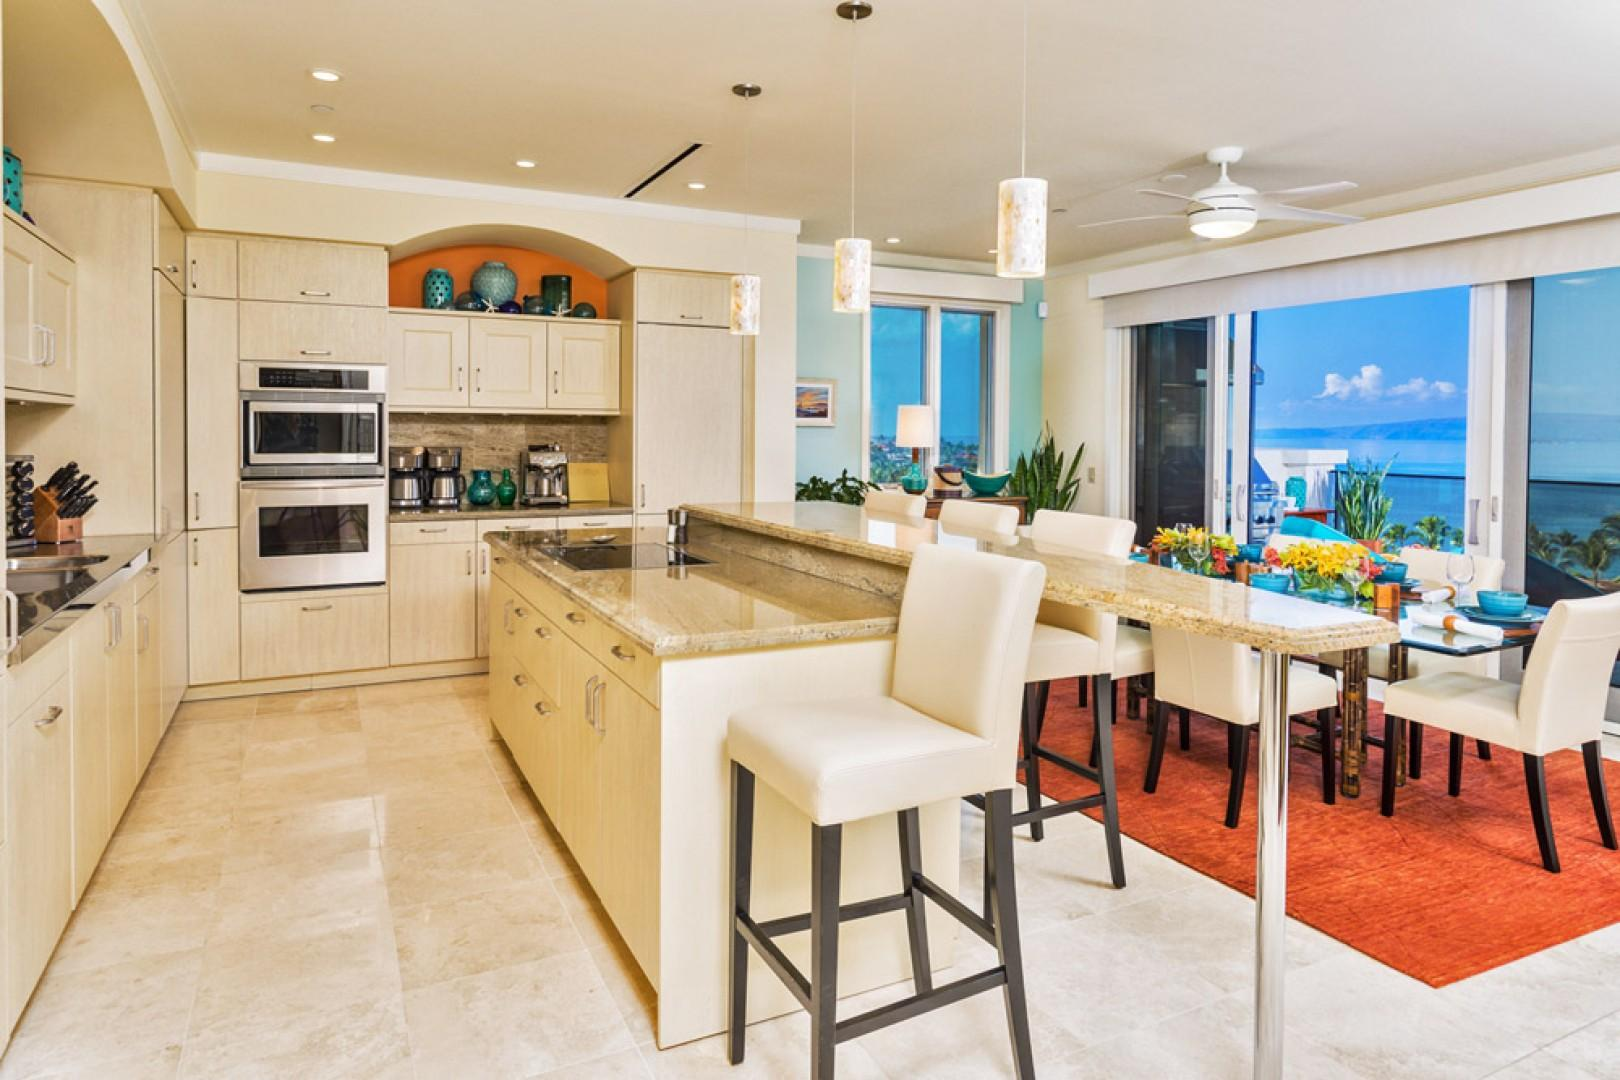 K507 Wailea Seashore Suite - Kitchen and Dining with Panoramic Ocean Views and Everything You May Need to Entertain and Dine